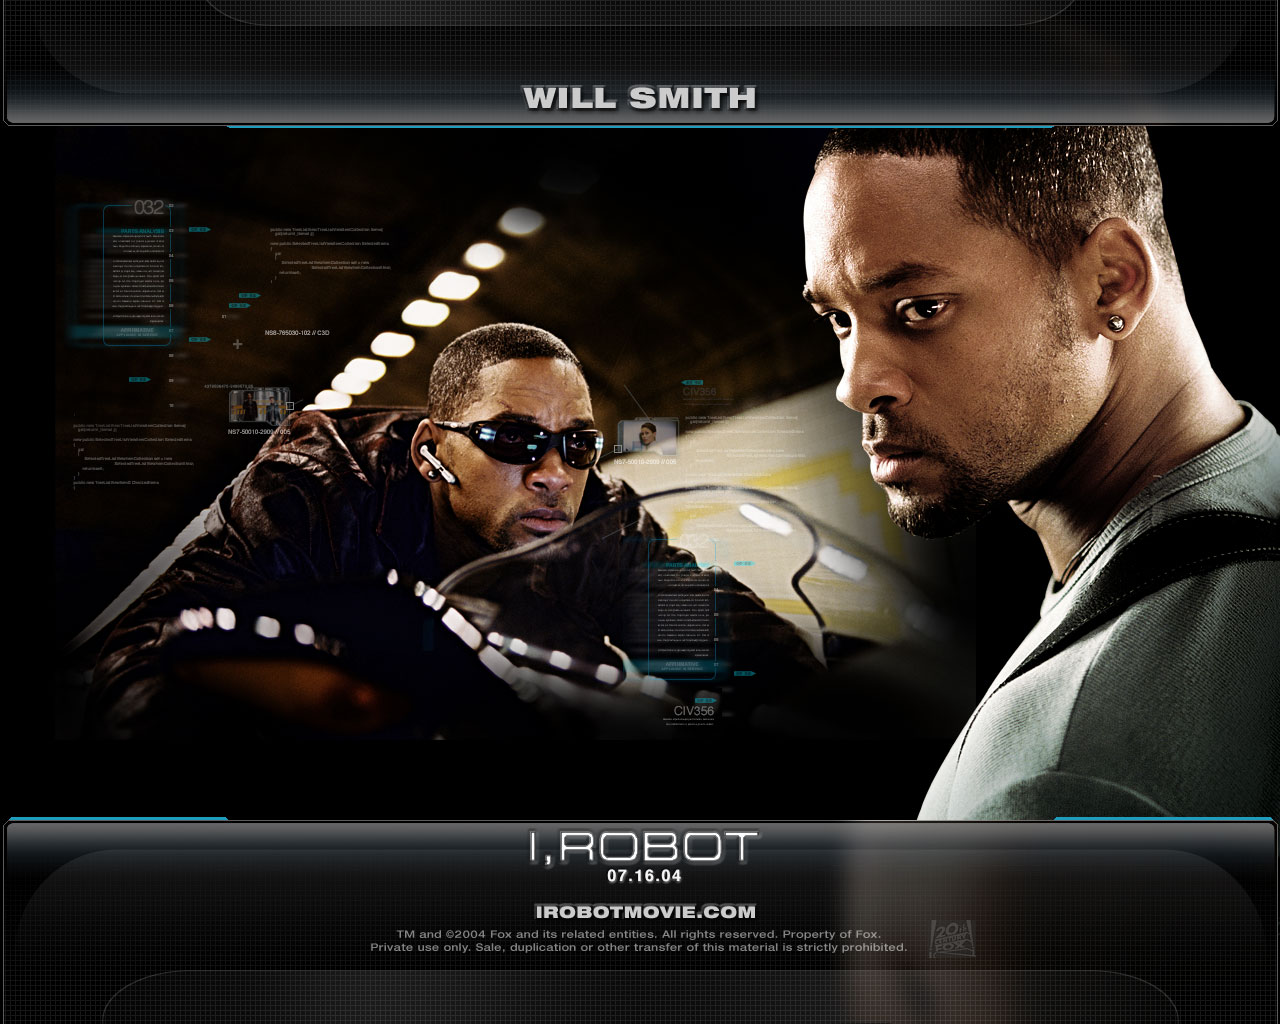 http://3.bp.blogspot.com/-_28SGpMxxG8/TbLYdk5iCaI/AAAAAAAAAx0/XvhHAu75PC4/s1600/Will+Smith+Movies+3.jpg